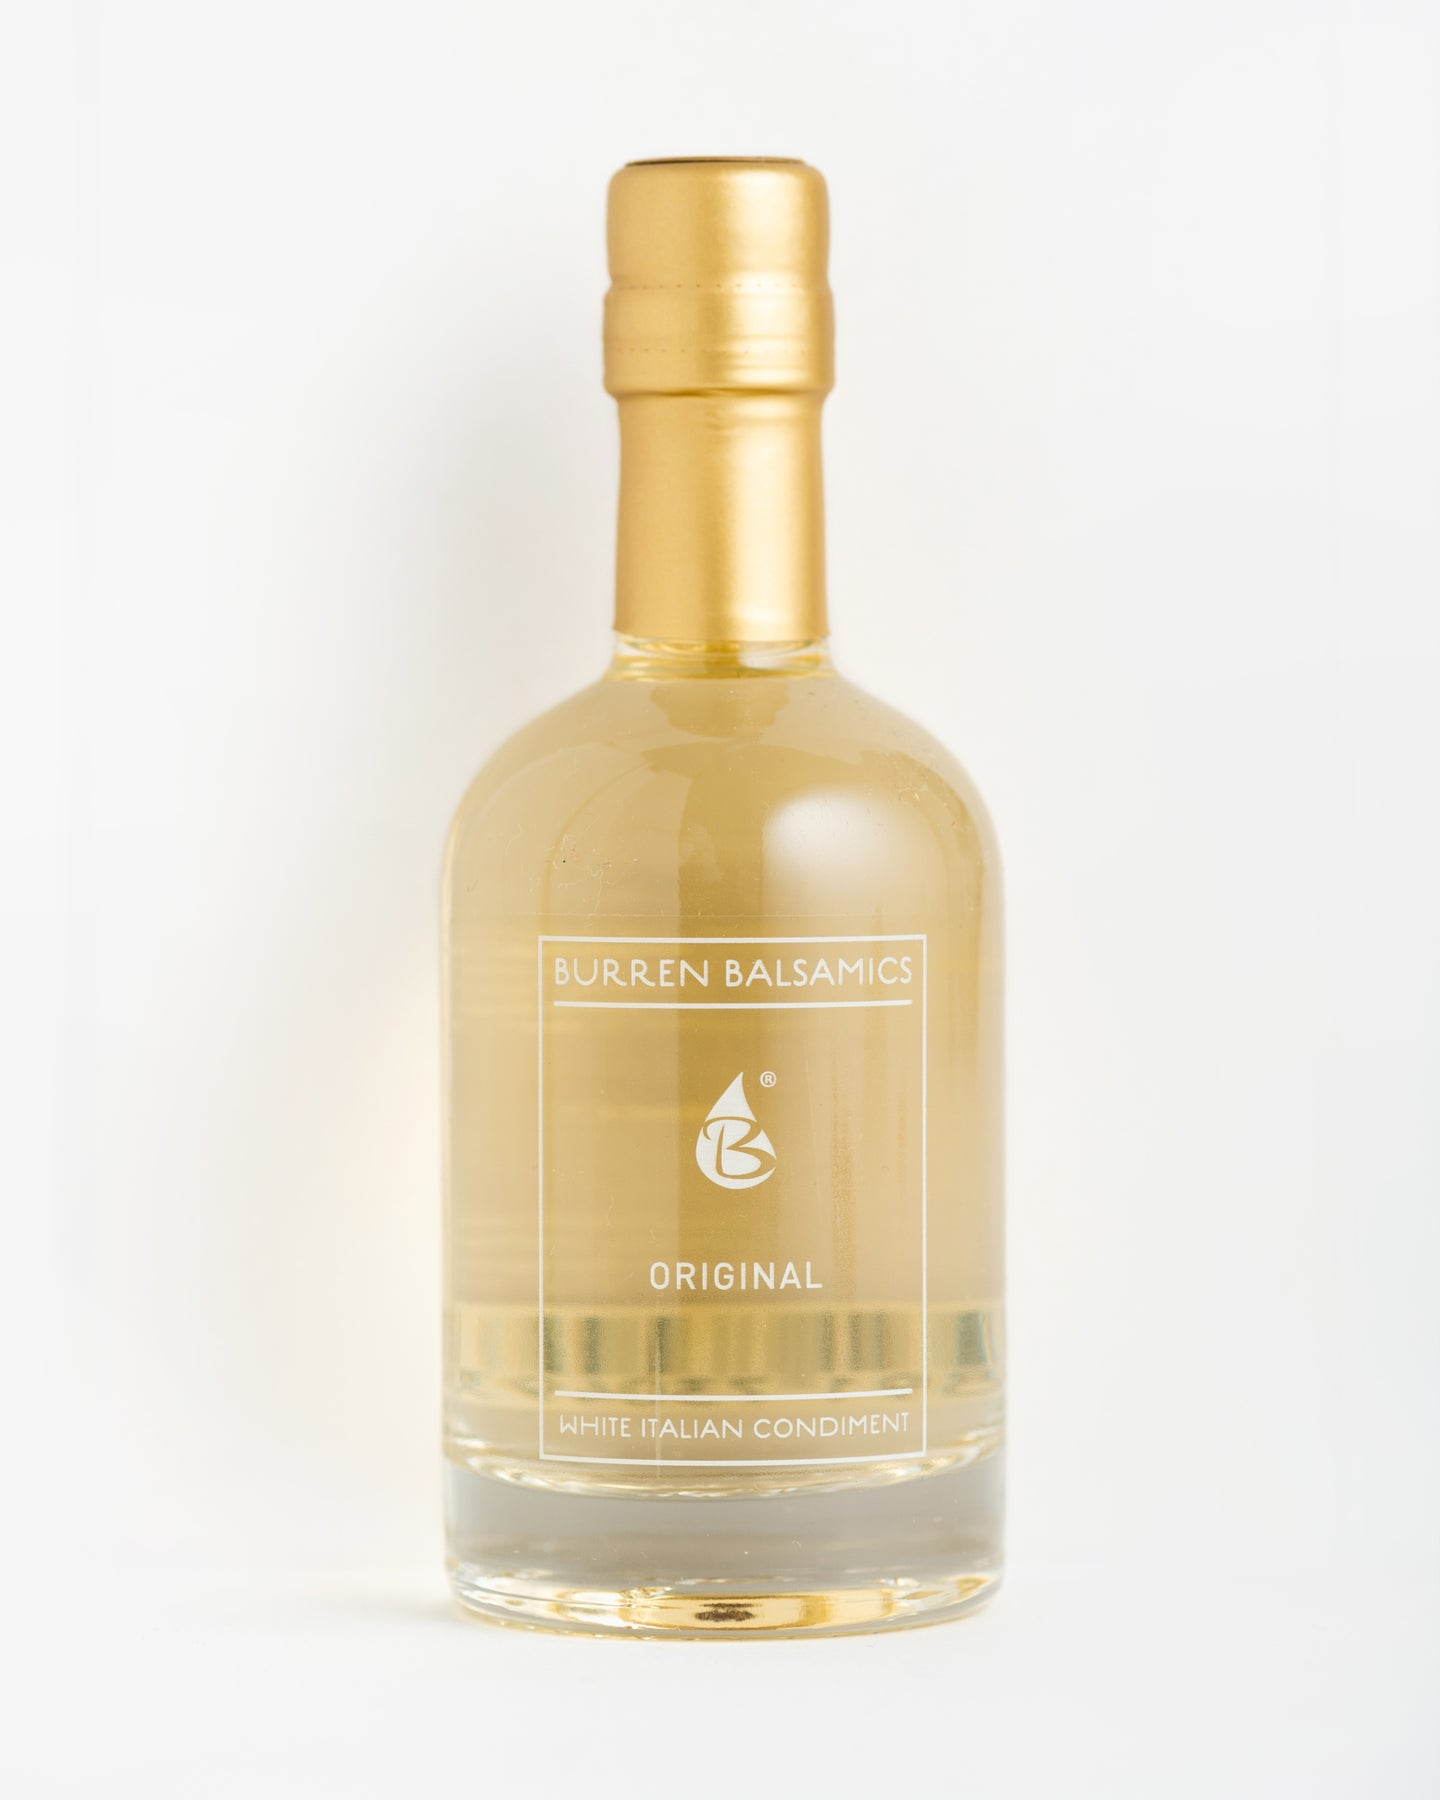 Burren Balsamics - White Condiment - Original